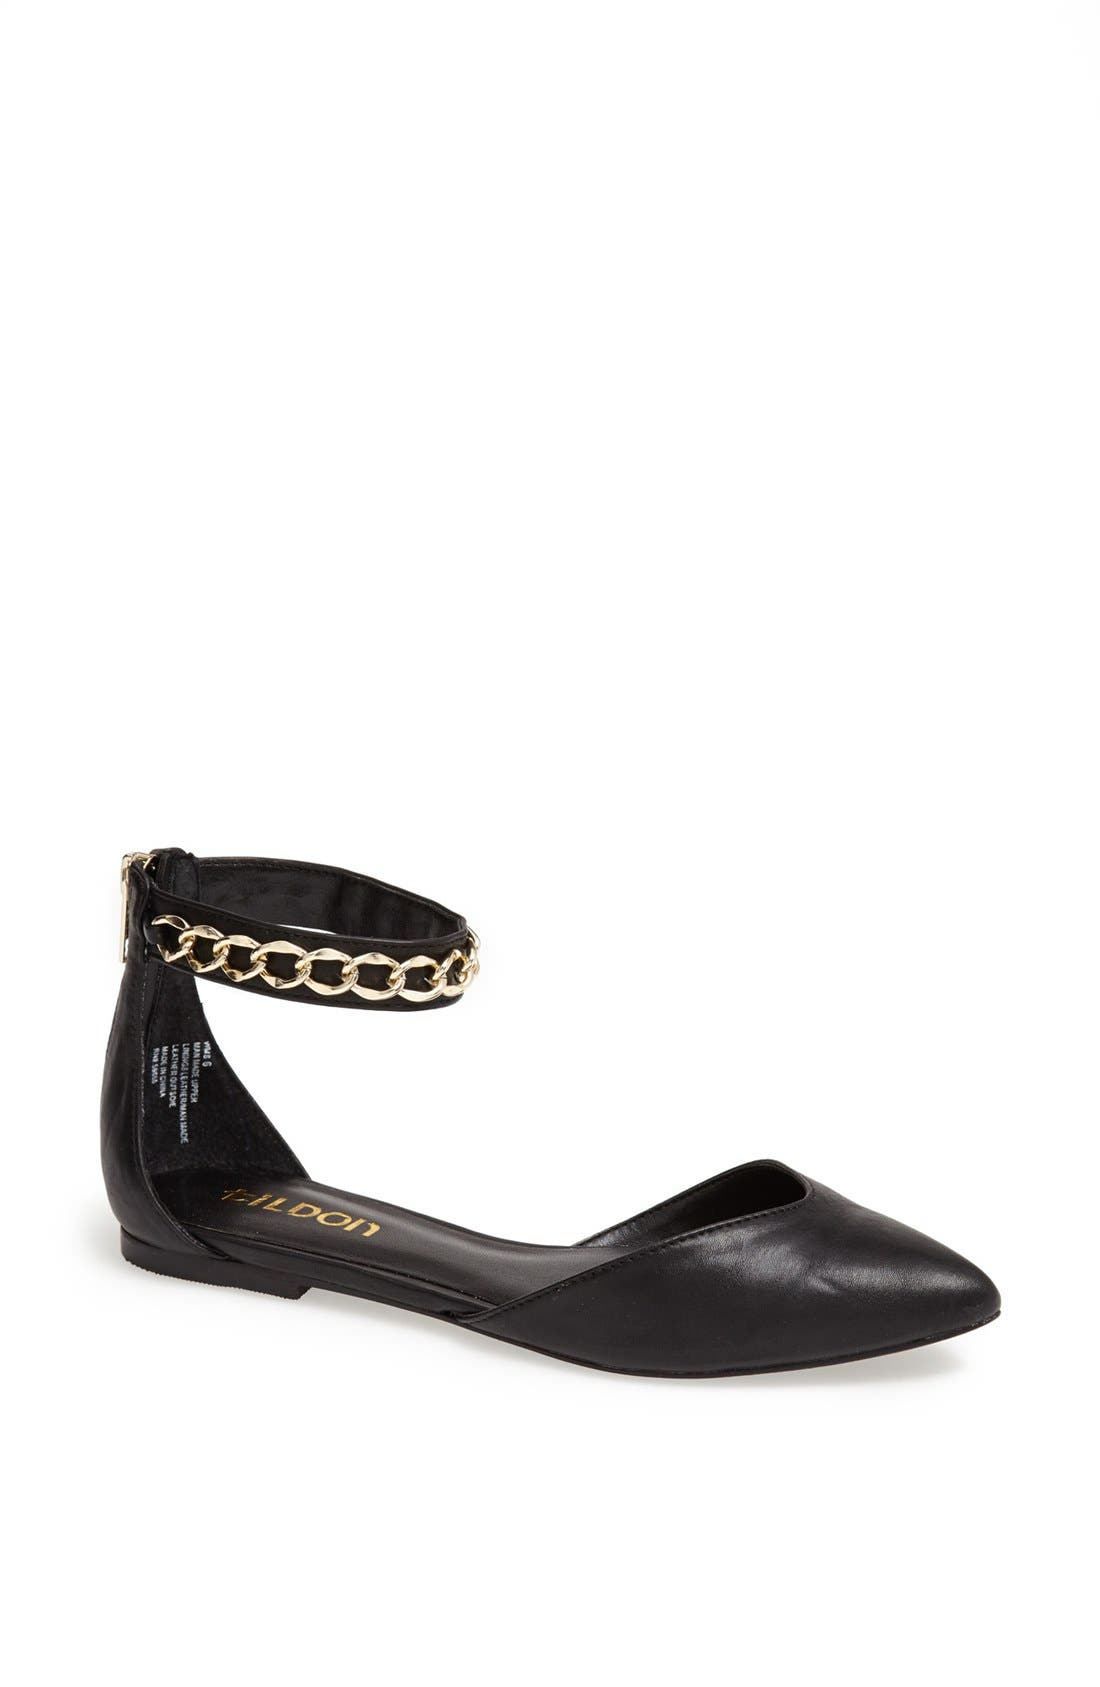 Alternate Image 1 Selected - Tildon 'Anya' Ankle Strap D'Orsay Flat